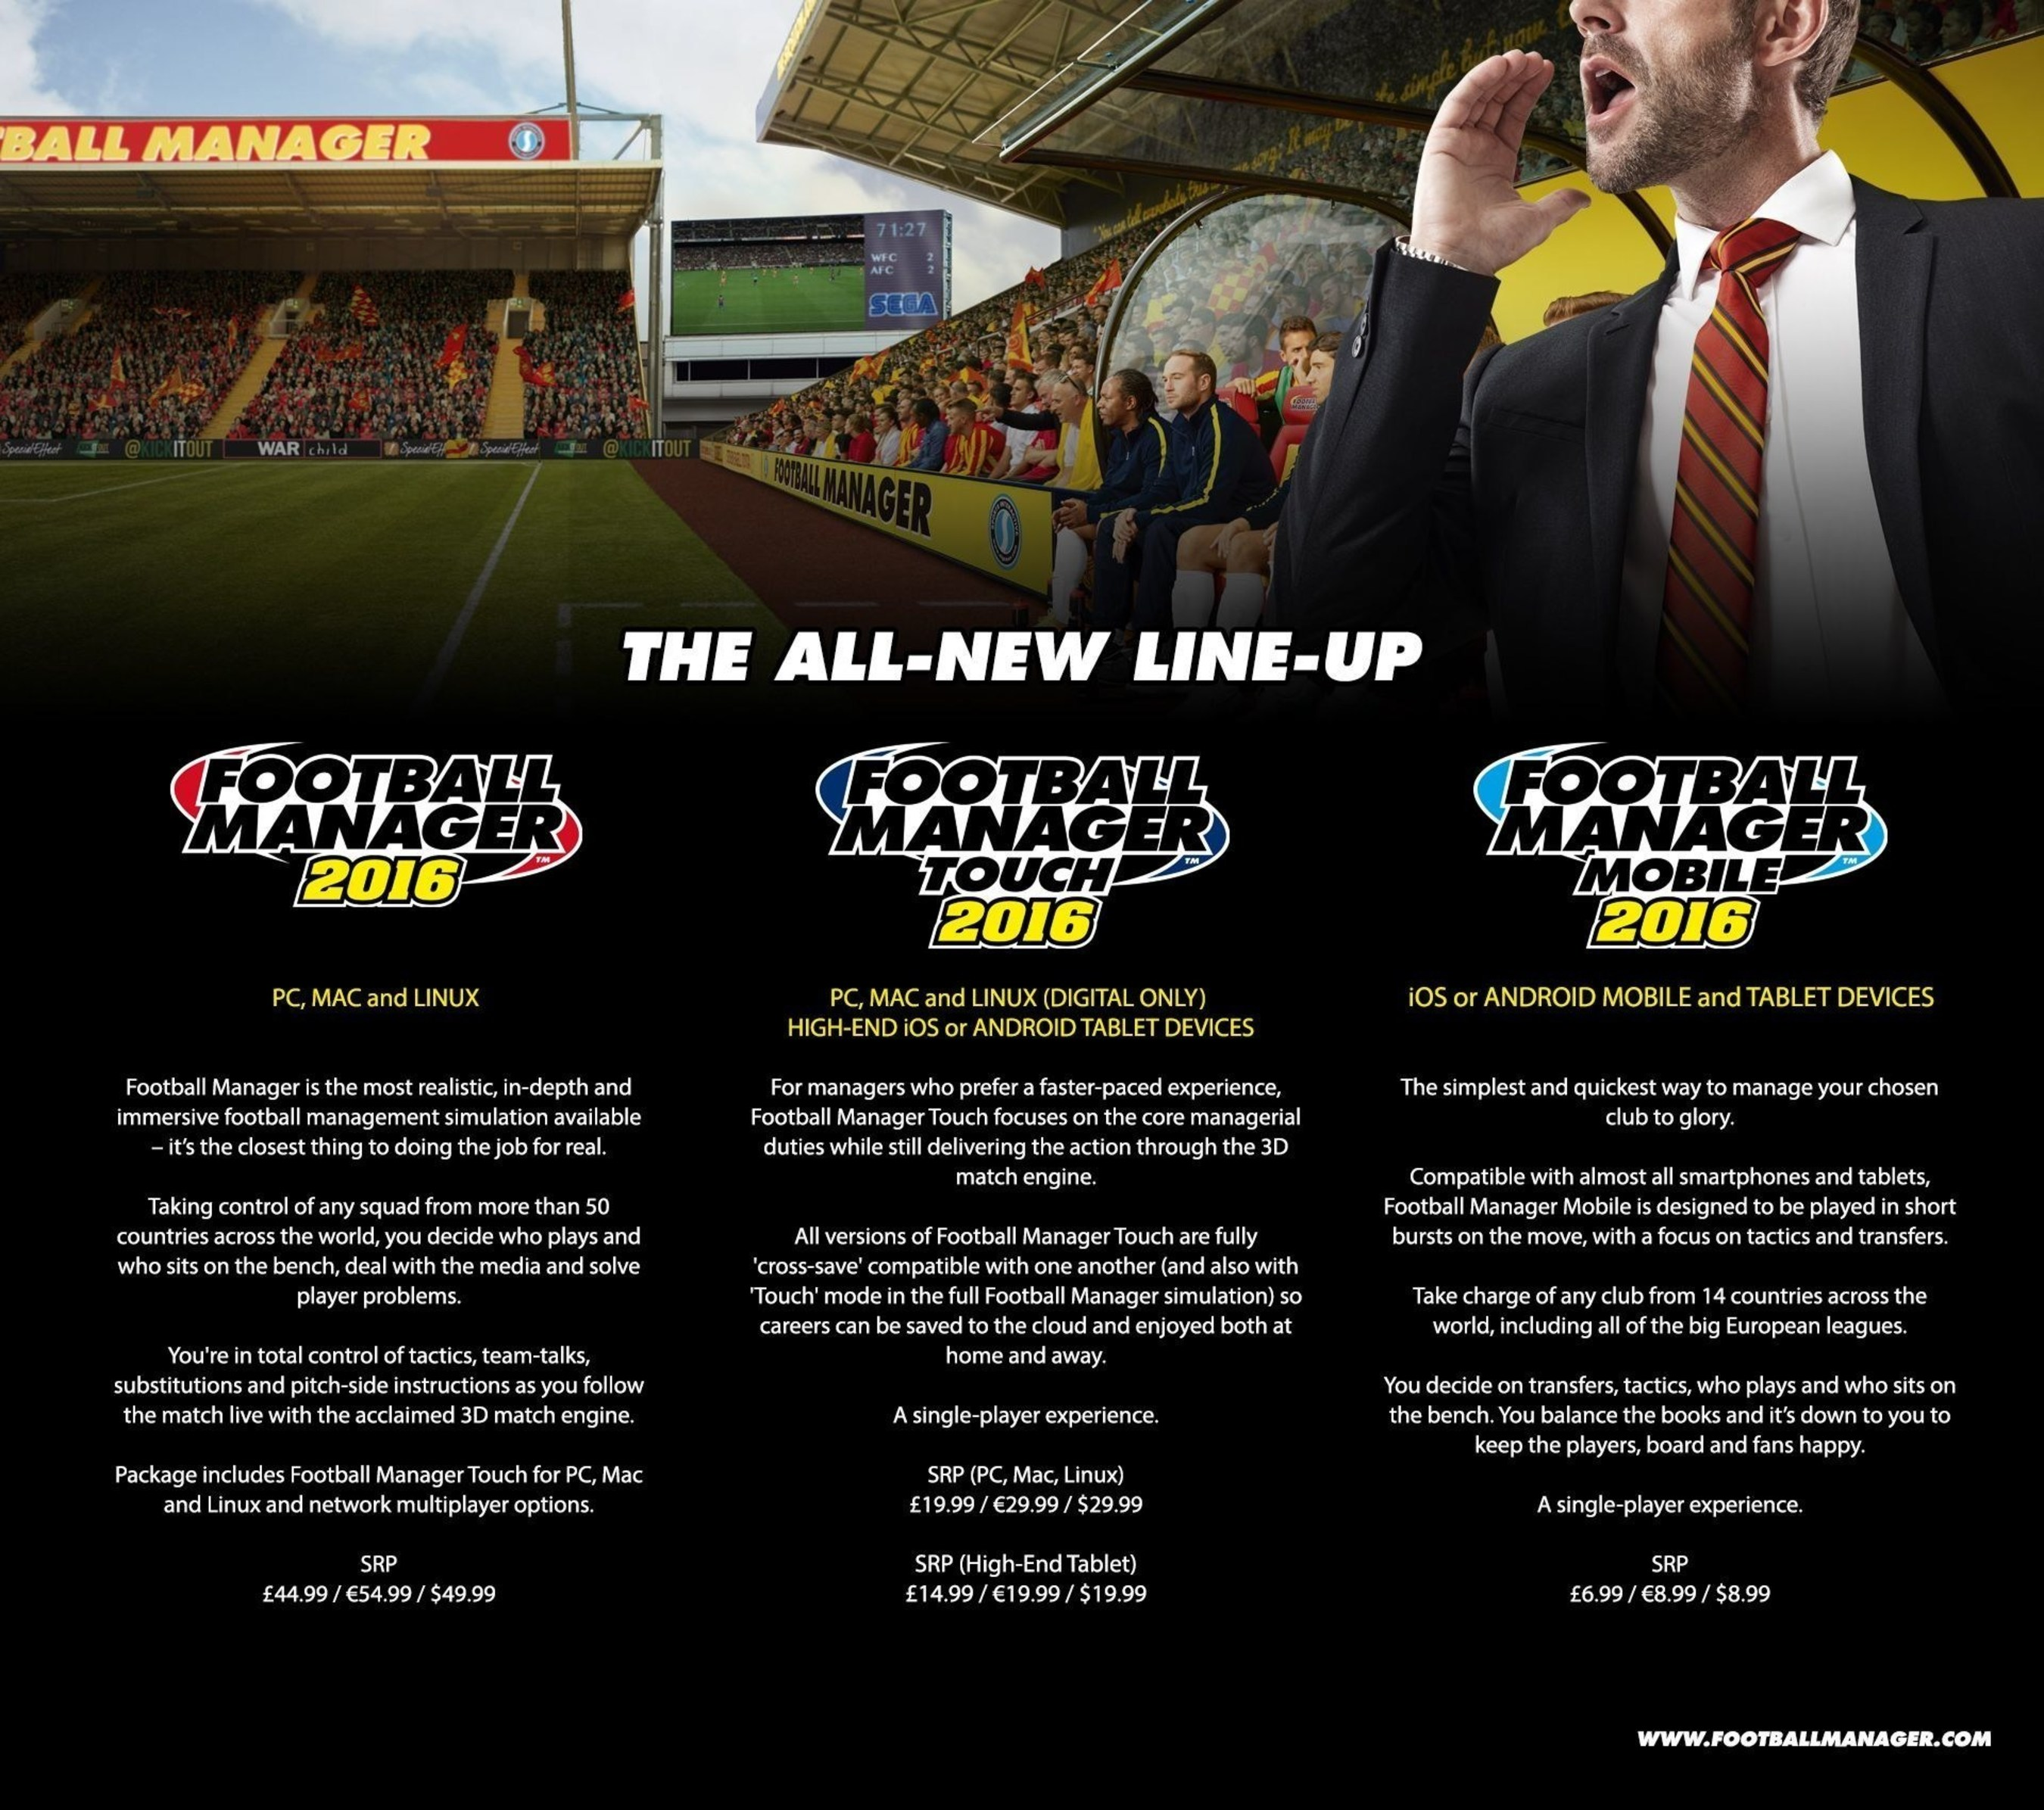 Football Manager 2016 Infographic (PRNewsFoto/SEGA Europe Ltd) (PRNewsFoto/SEGA Europe Ltd)